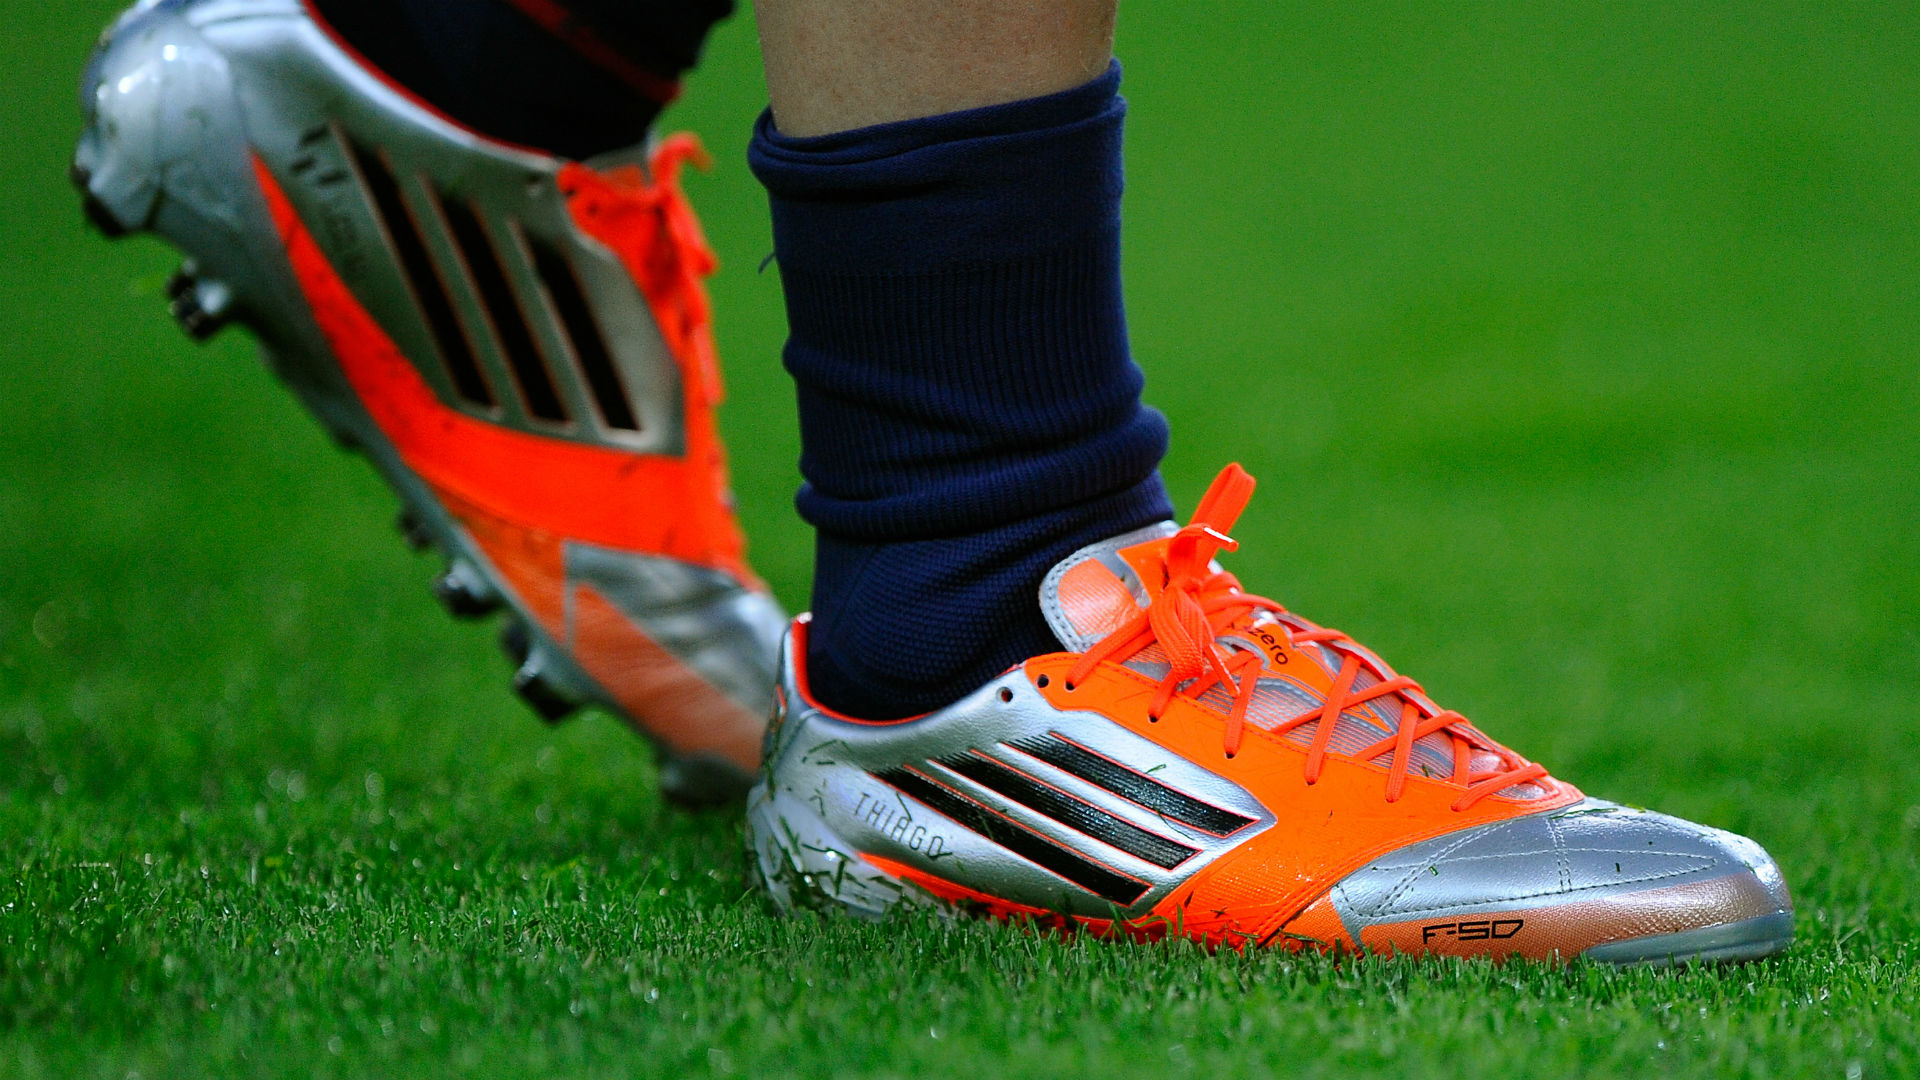 Lionel Messi's boots a history of the Barcelona